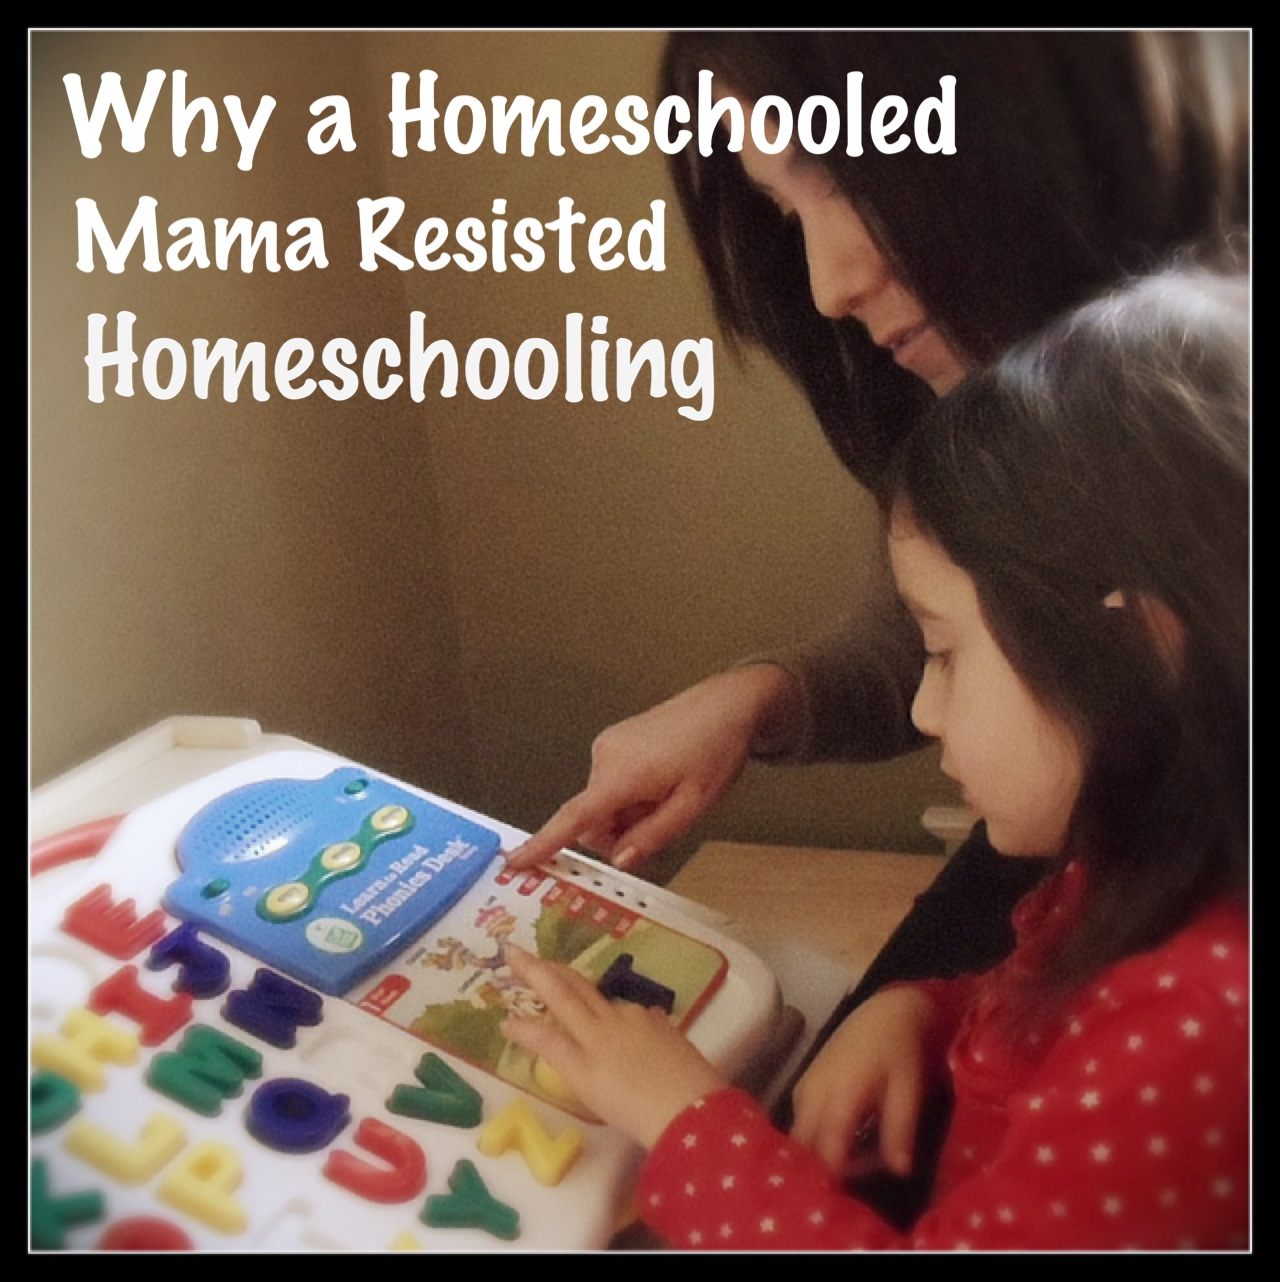 Why a Homeschooled Mama Resisted Homeschooling  www.HomeschoolinMama.com @HomeschoolnMama